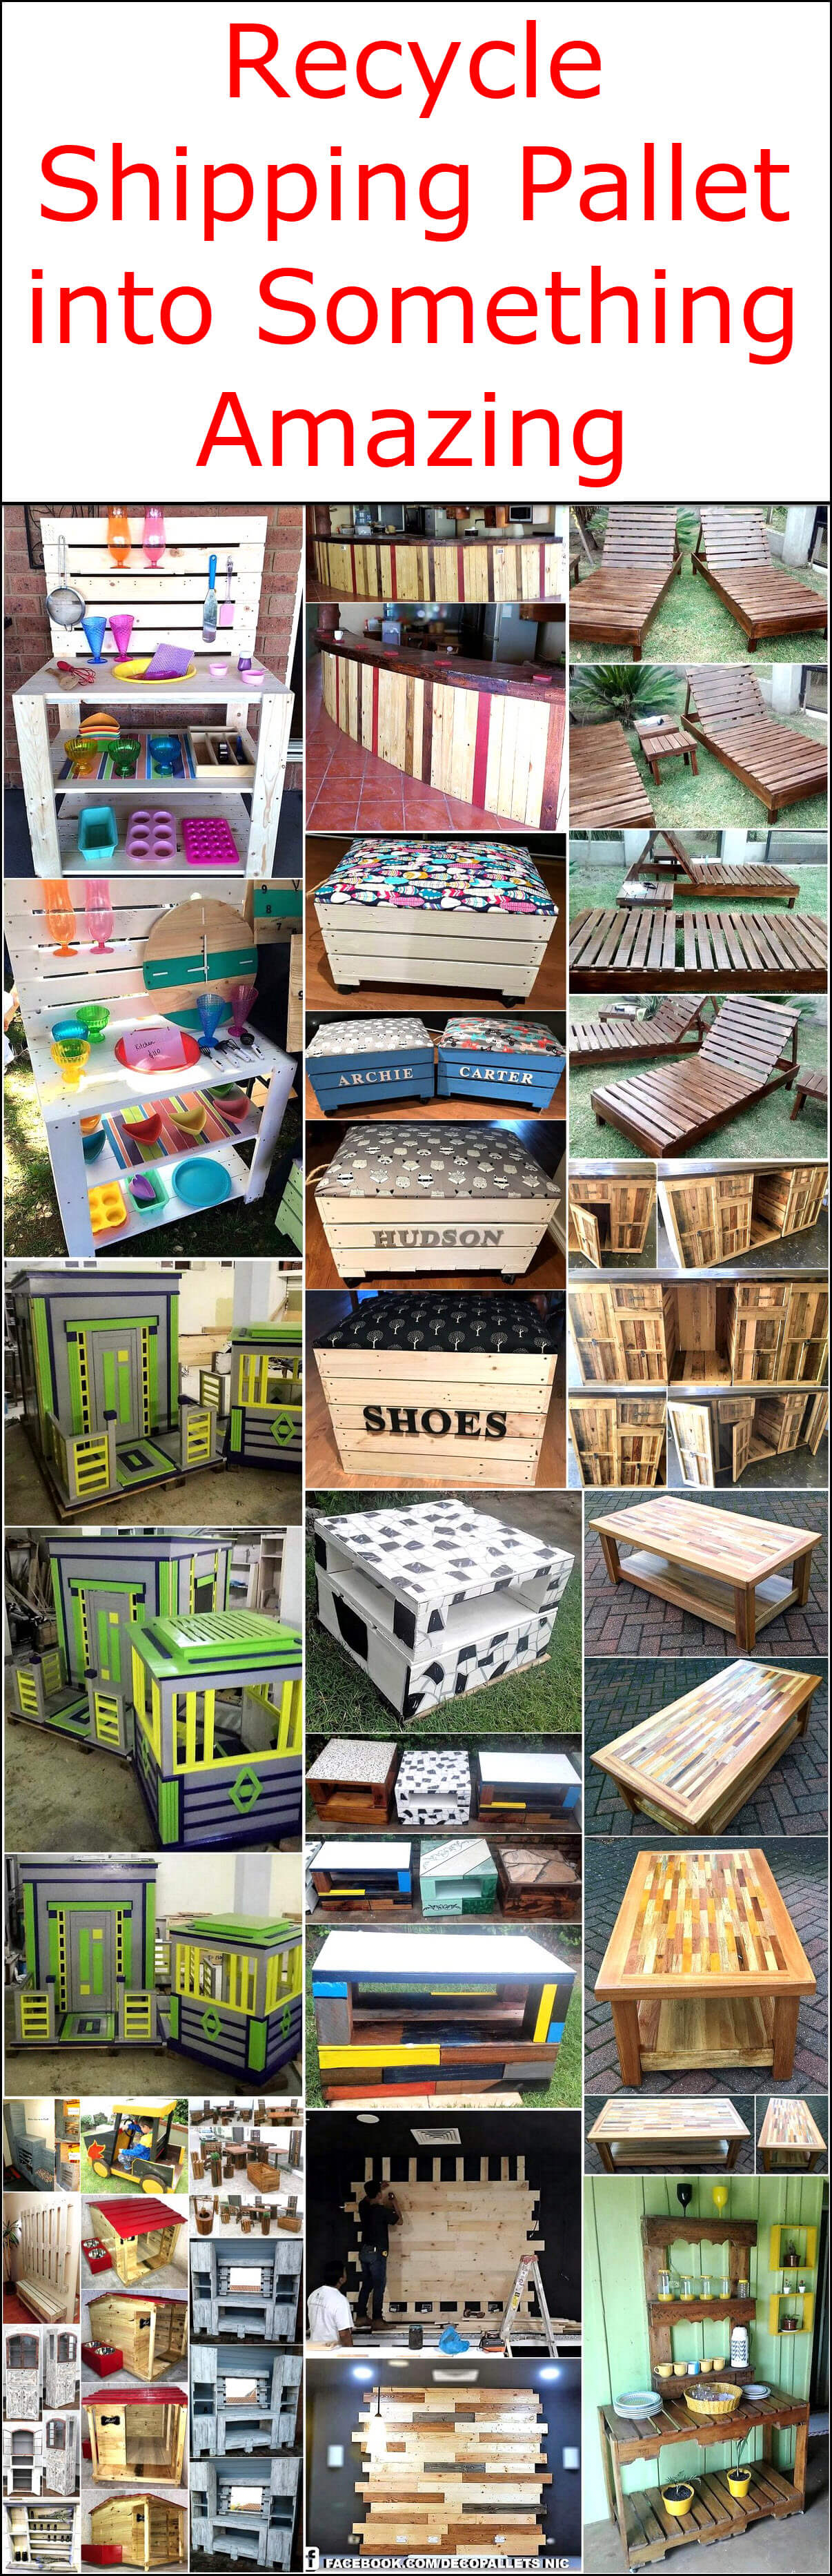 Recycle Shipping Pallet into Something Amazing